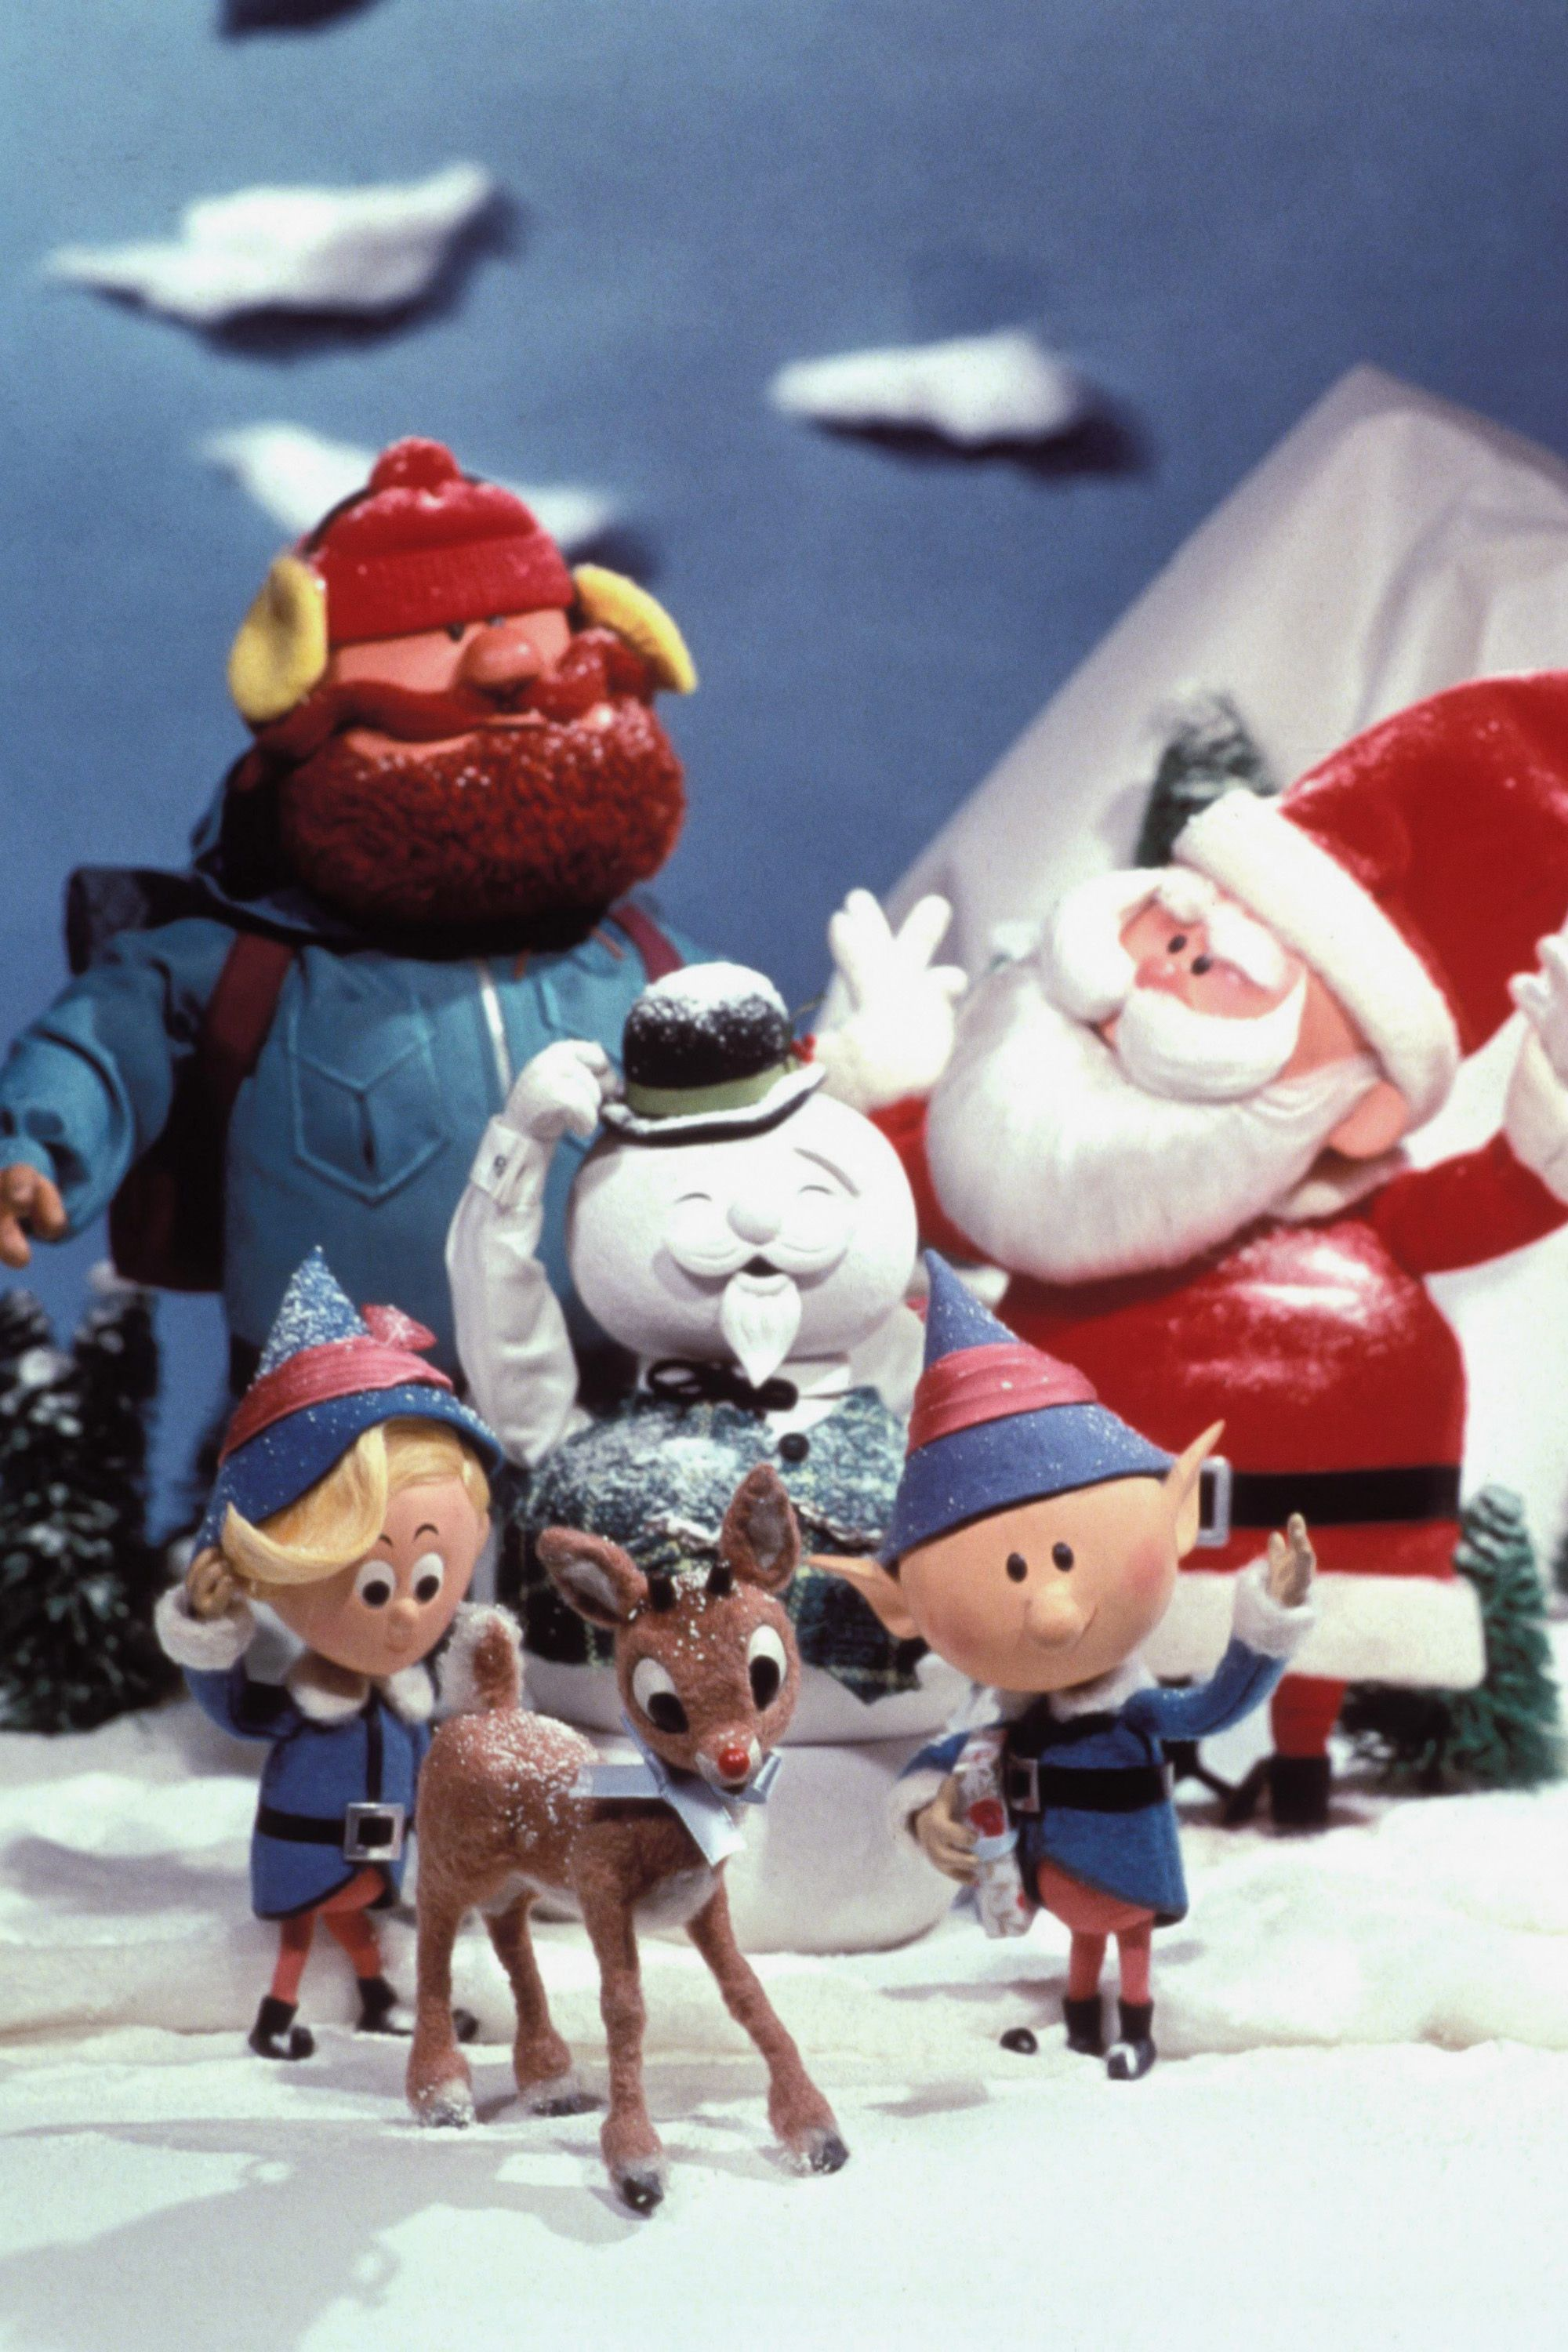 15 Classic Christmas Movies - Best Holiday Movies of All Time